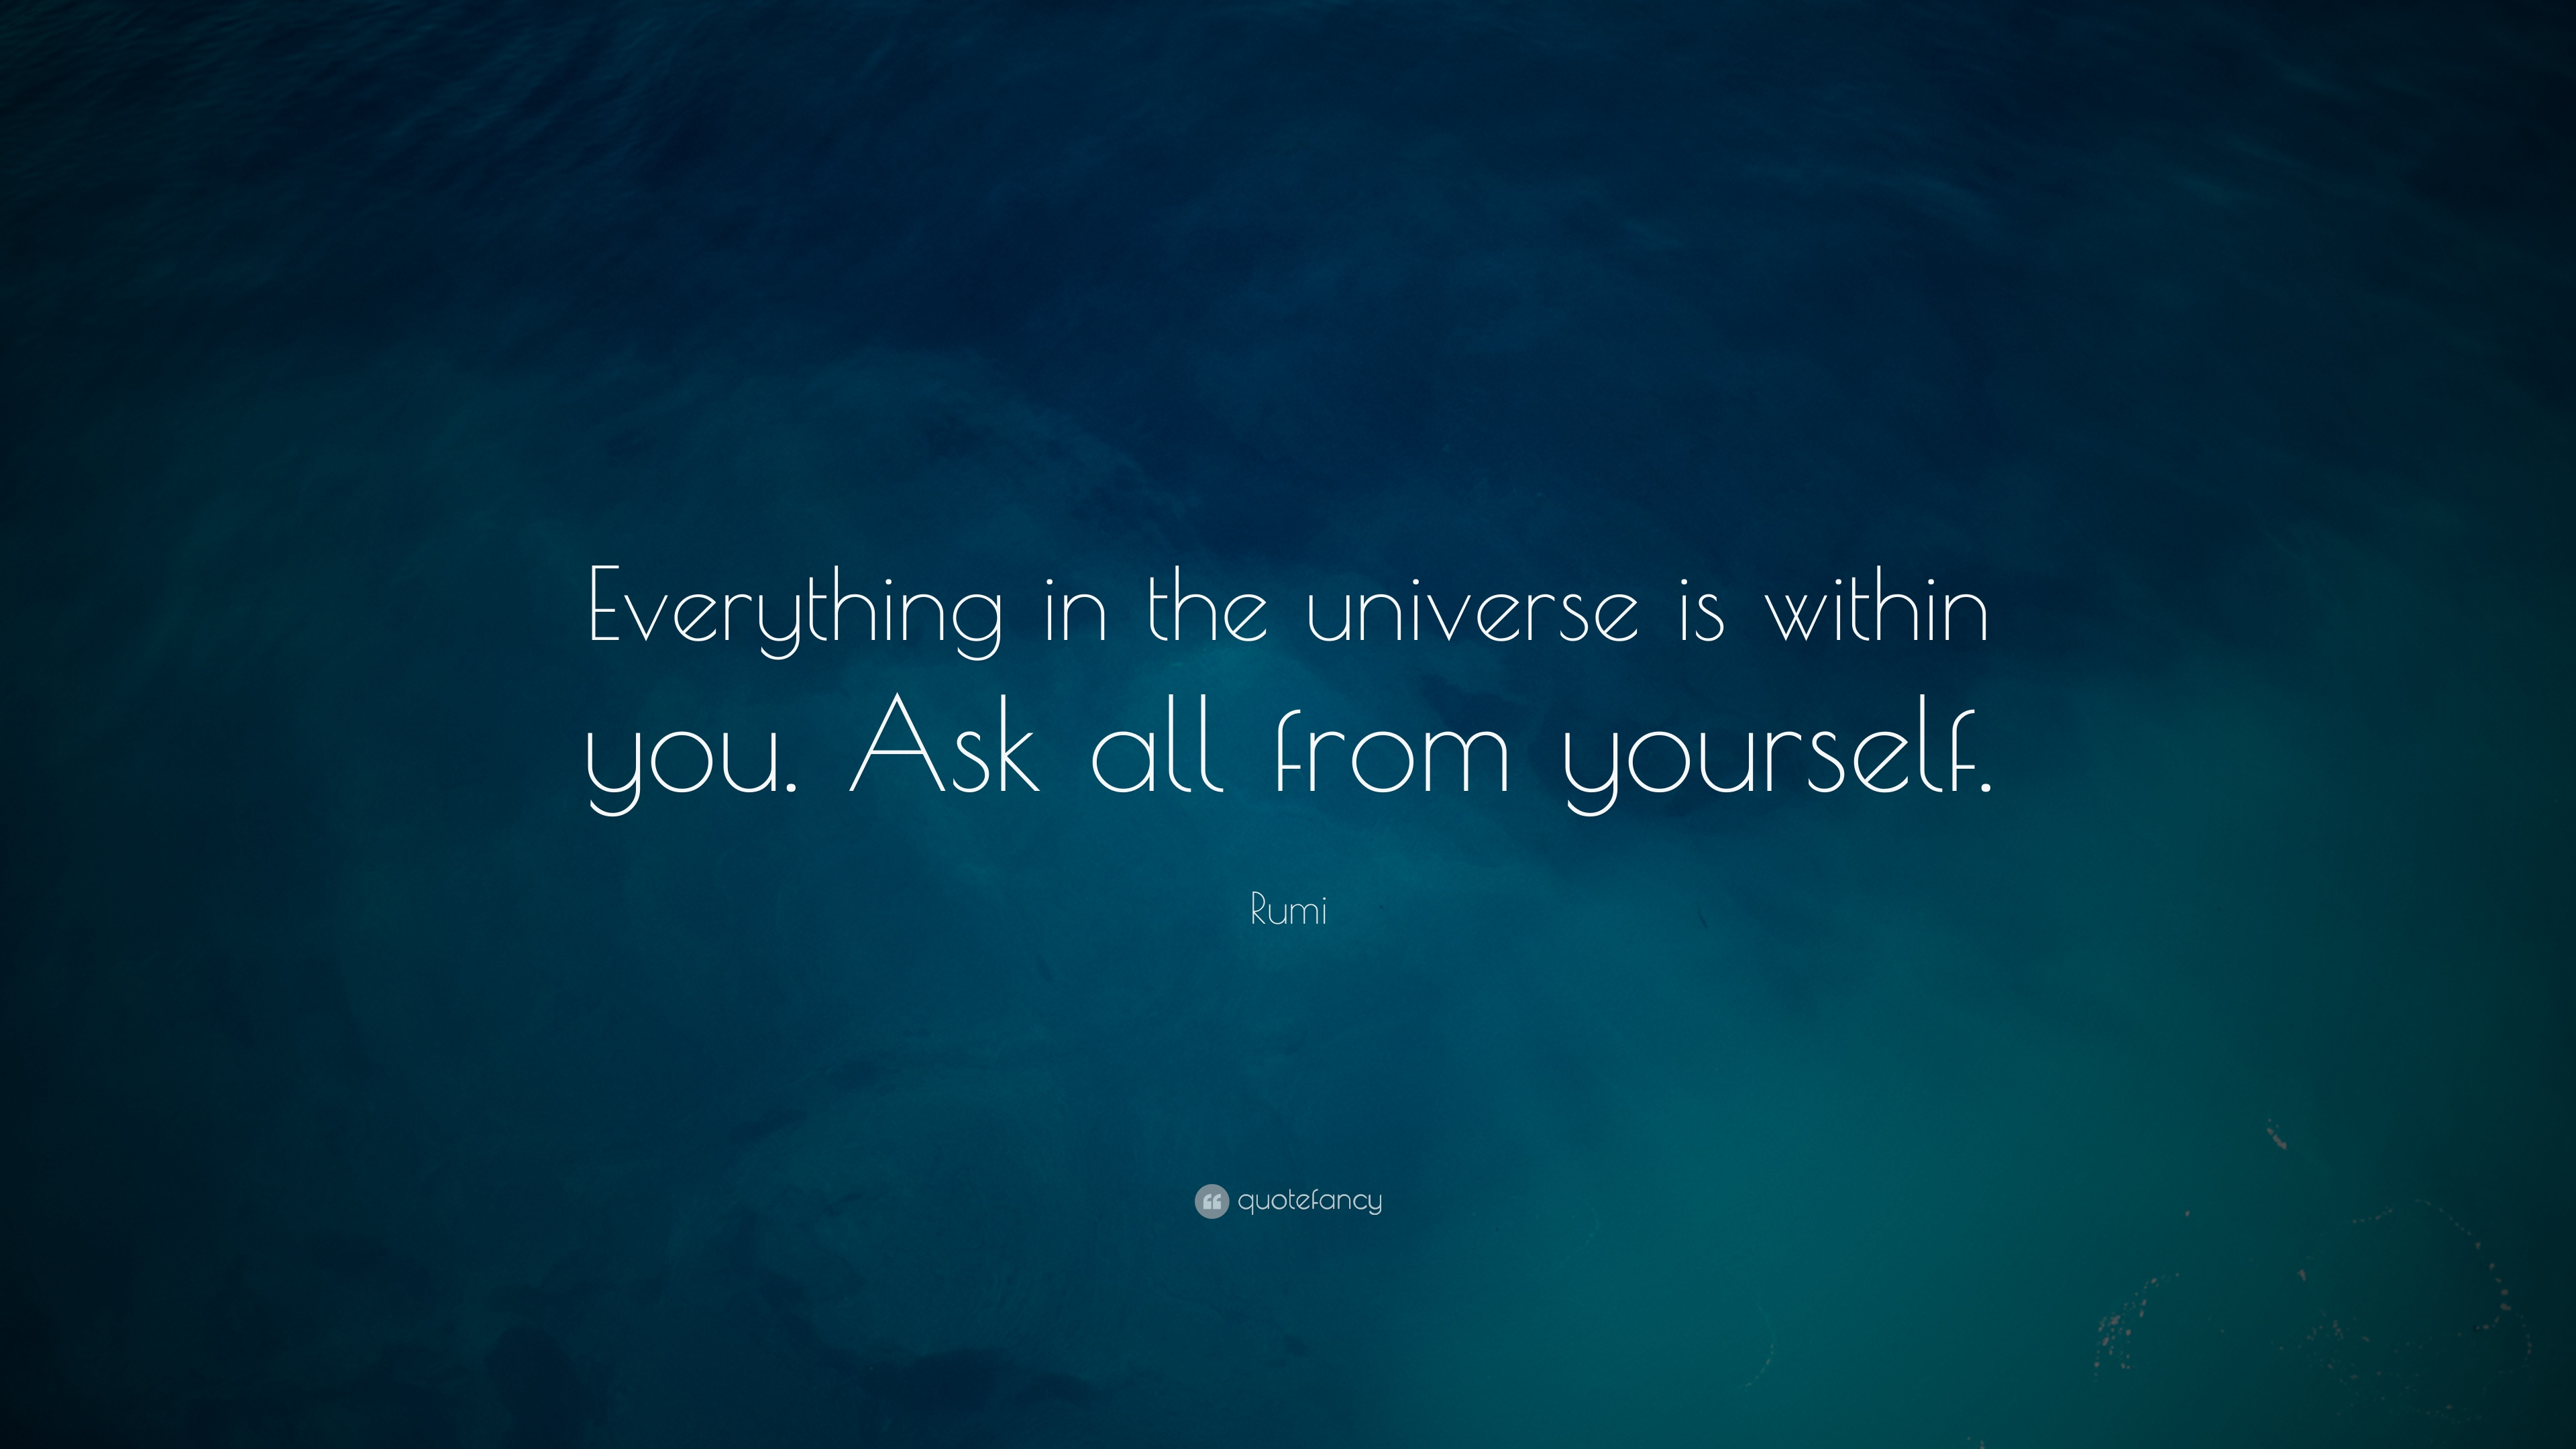 Desktop Wallpaper Motivational Quotes Rumi Quote Everything In The Universe Is Within You Ask